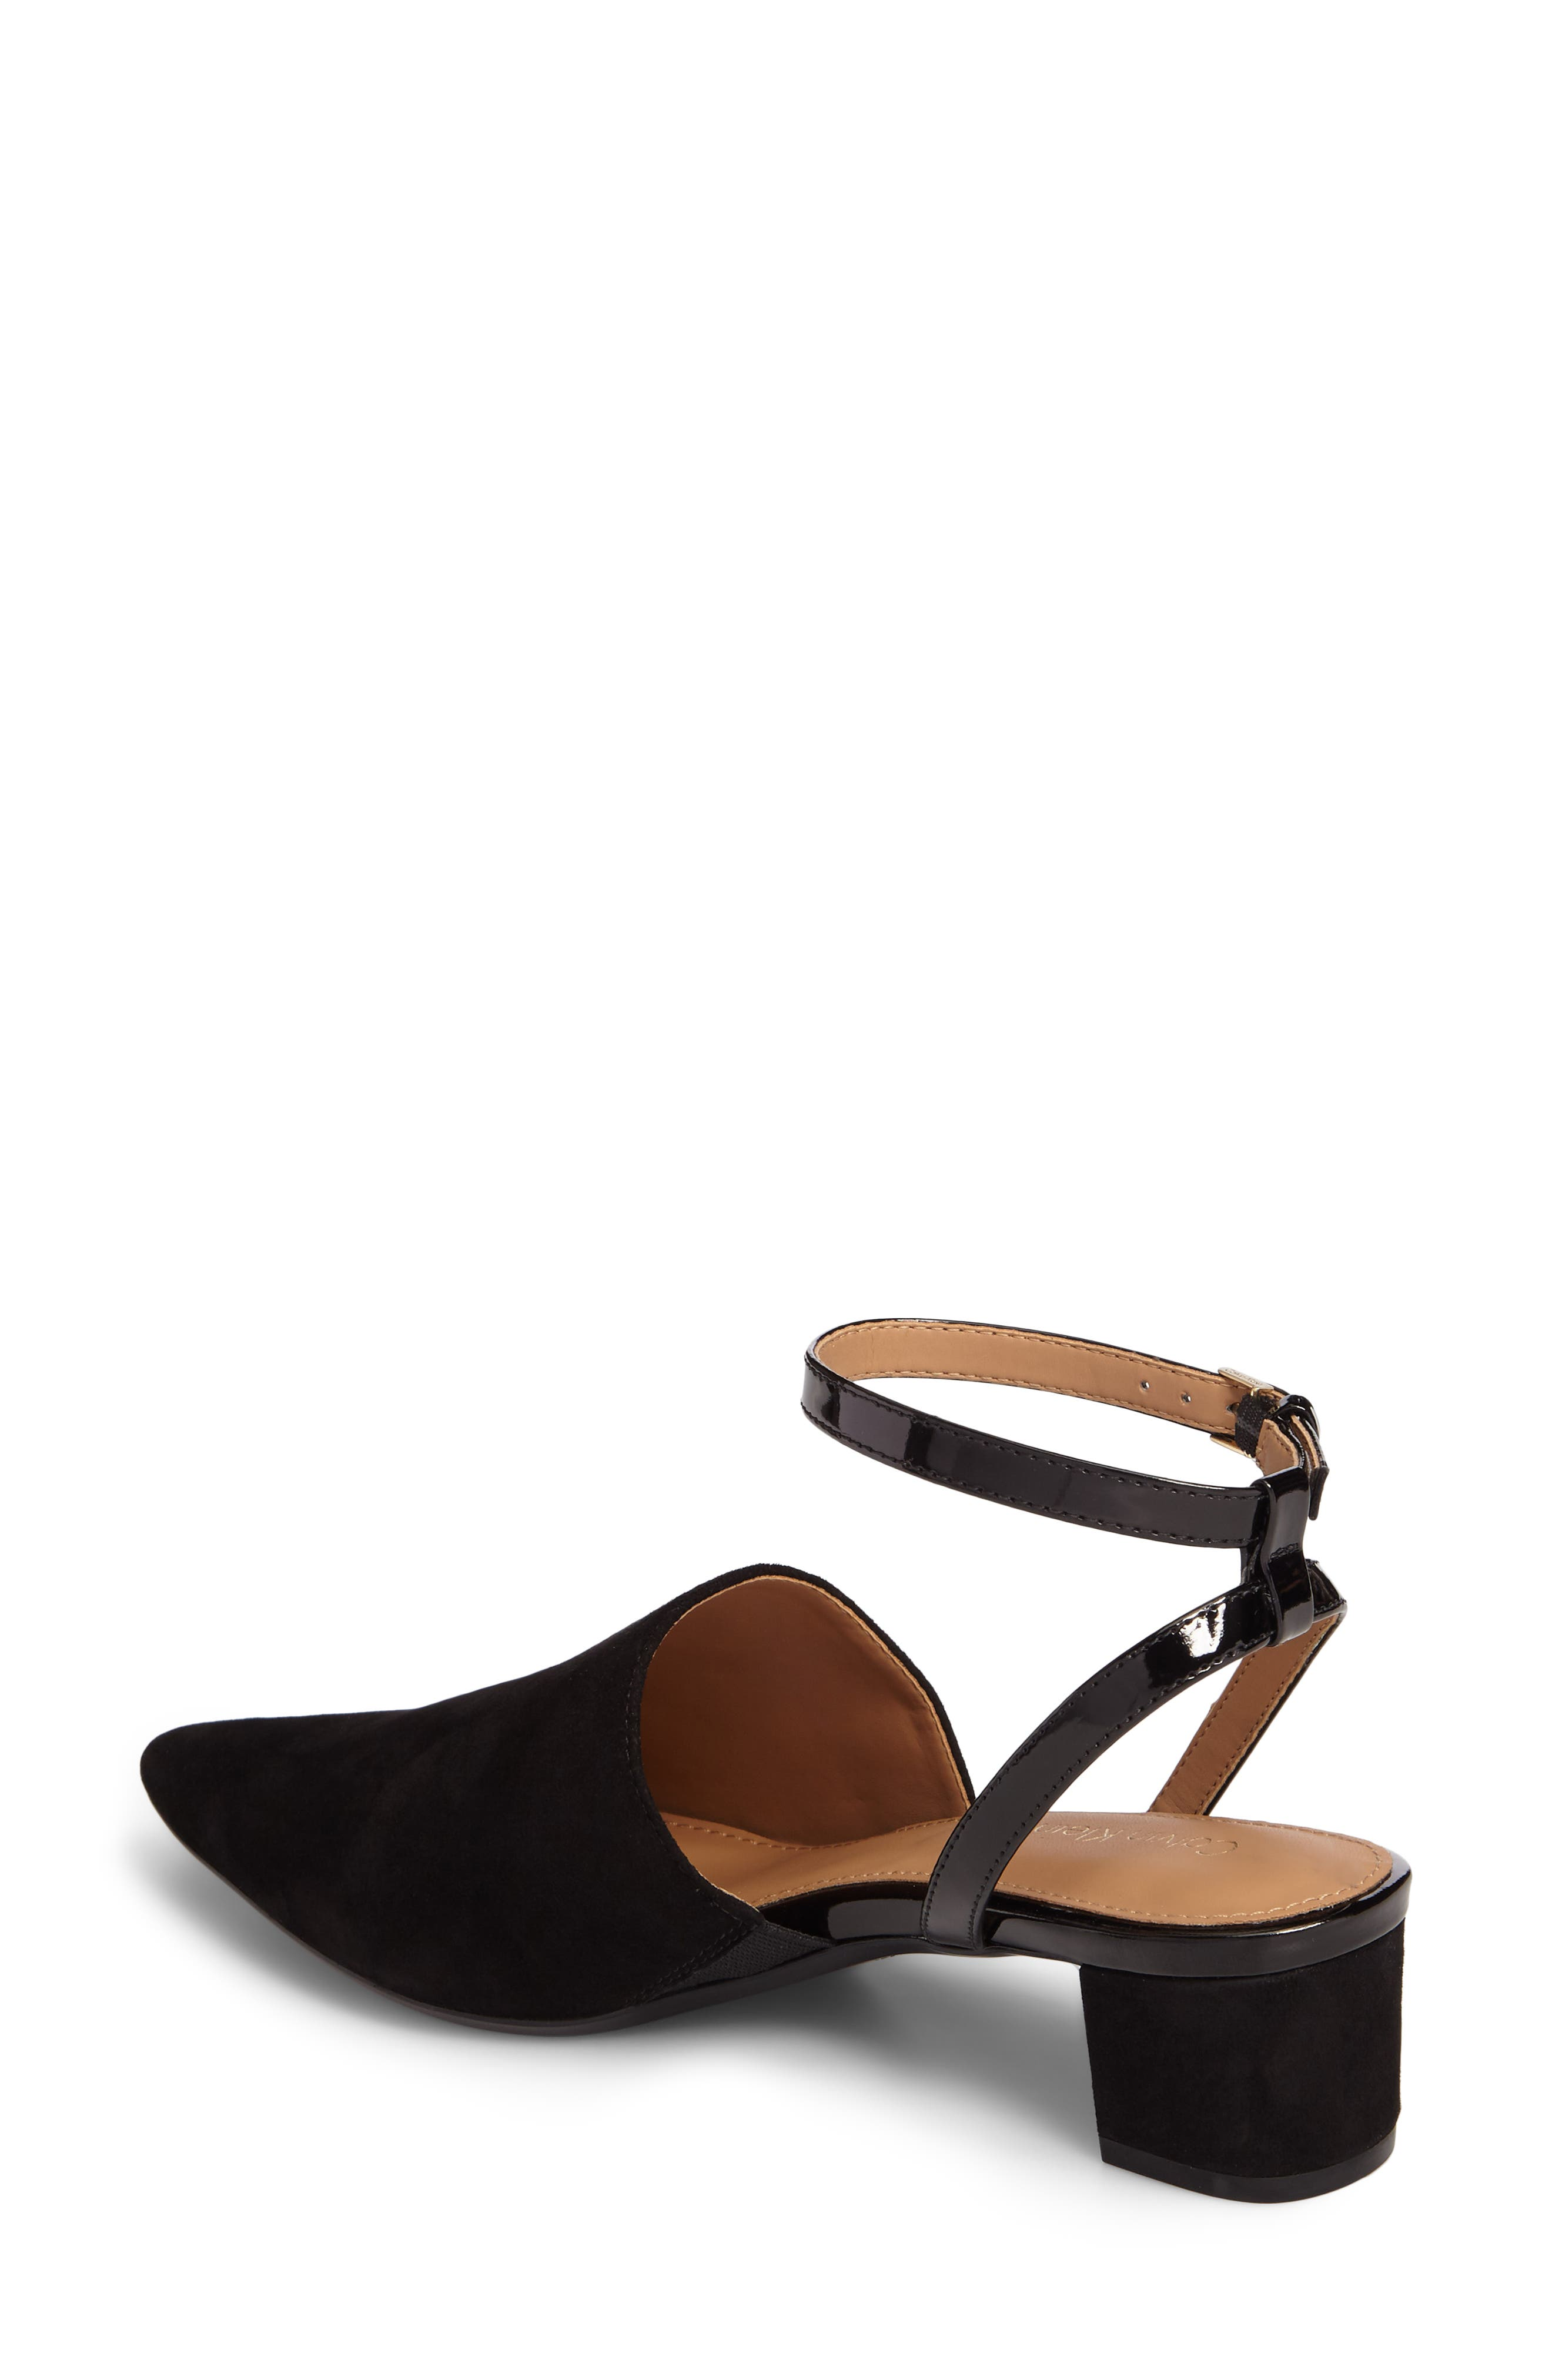 Ginetta Ankle Strap Pump,                             Alternate thumbnail 7, color,